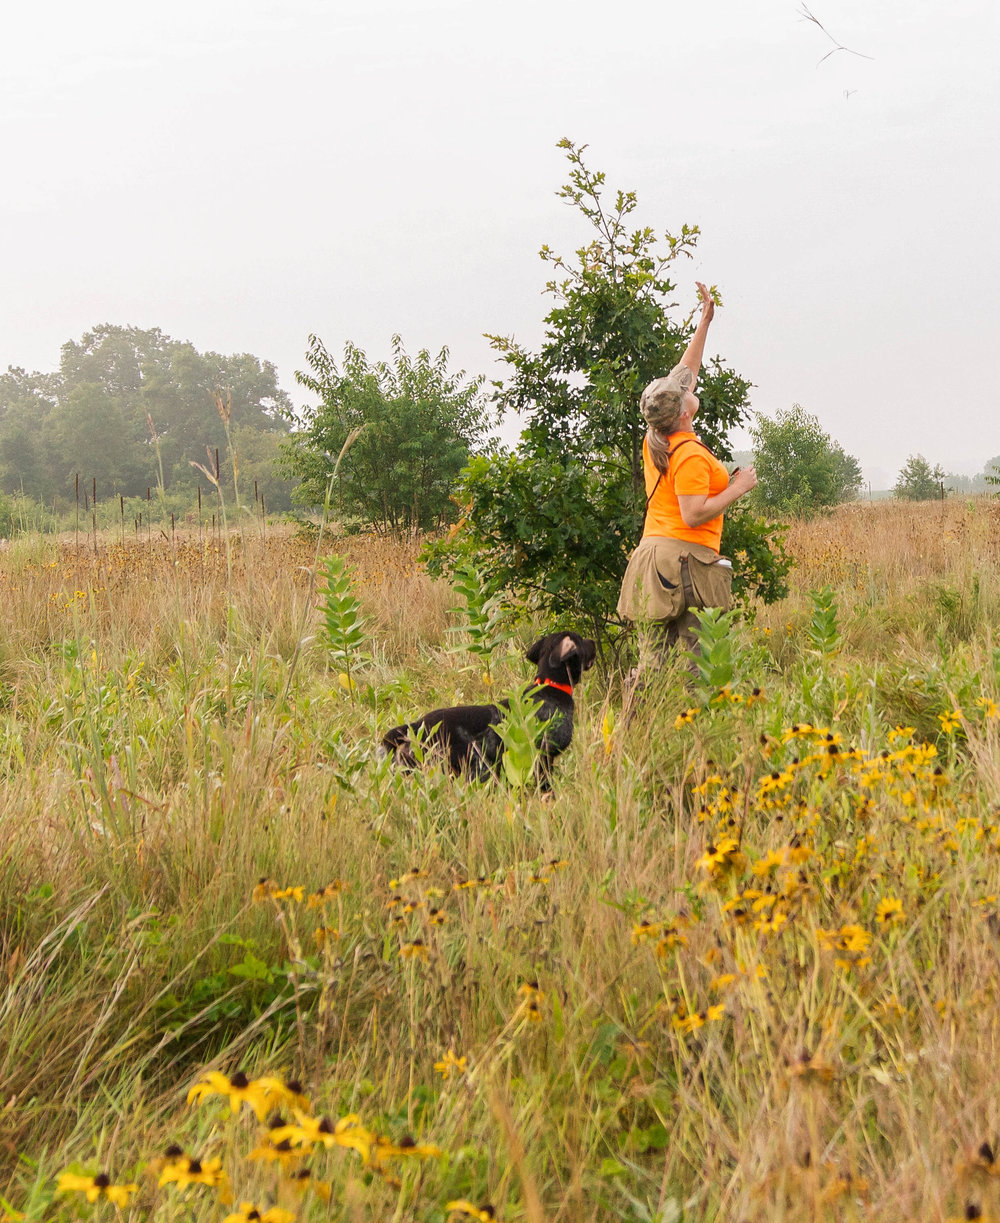 Hunting Programs - It is widely known that hunting participation significantly increases with the involvement of a mentor, someone knowledgeable about the outdoors and willing to teach and guide a youth or novice hunter in the field.FPGF financially supports mentored youth and novice hunting programs offered at events held at various facilities around the state. The one next to the Poynette Pheasant State Game Farm is at the 250 acre MacKenzie Center.  This facility has overnight lodging, trap range, commercial kitchen, and classroom. Consult the Calendar of Events to find the Friend's LTH Events and Datesdditional information on the Learn to Hunt (LTH) program is available on the WDNR web site.  If you are interested in participating in a Learn to Hunt program as a student please complete the FPGF LTH Reservation Application